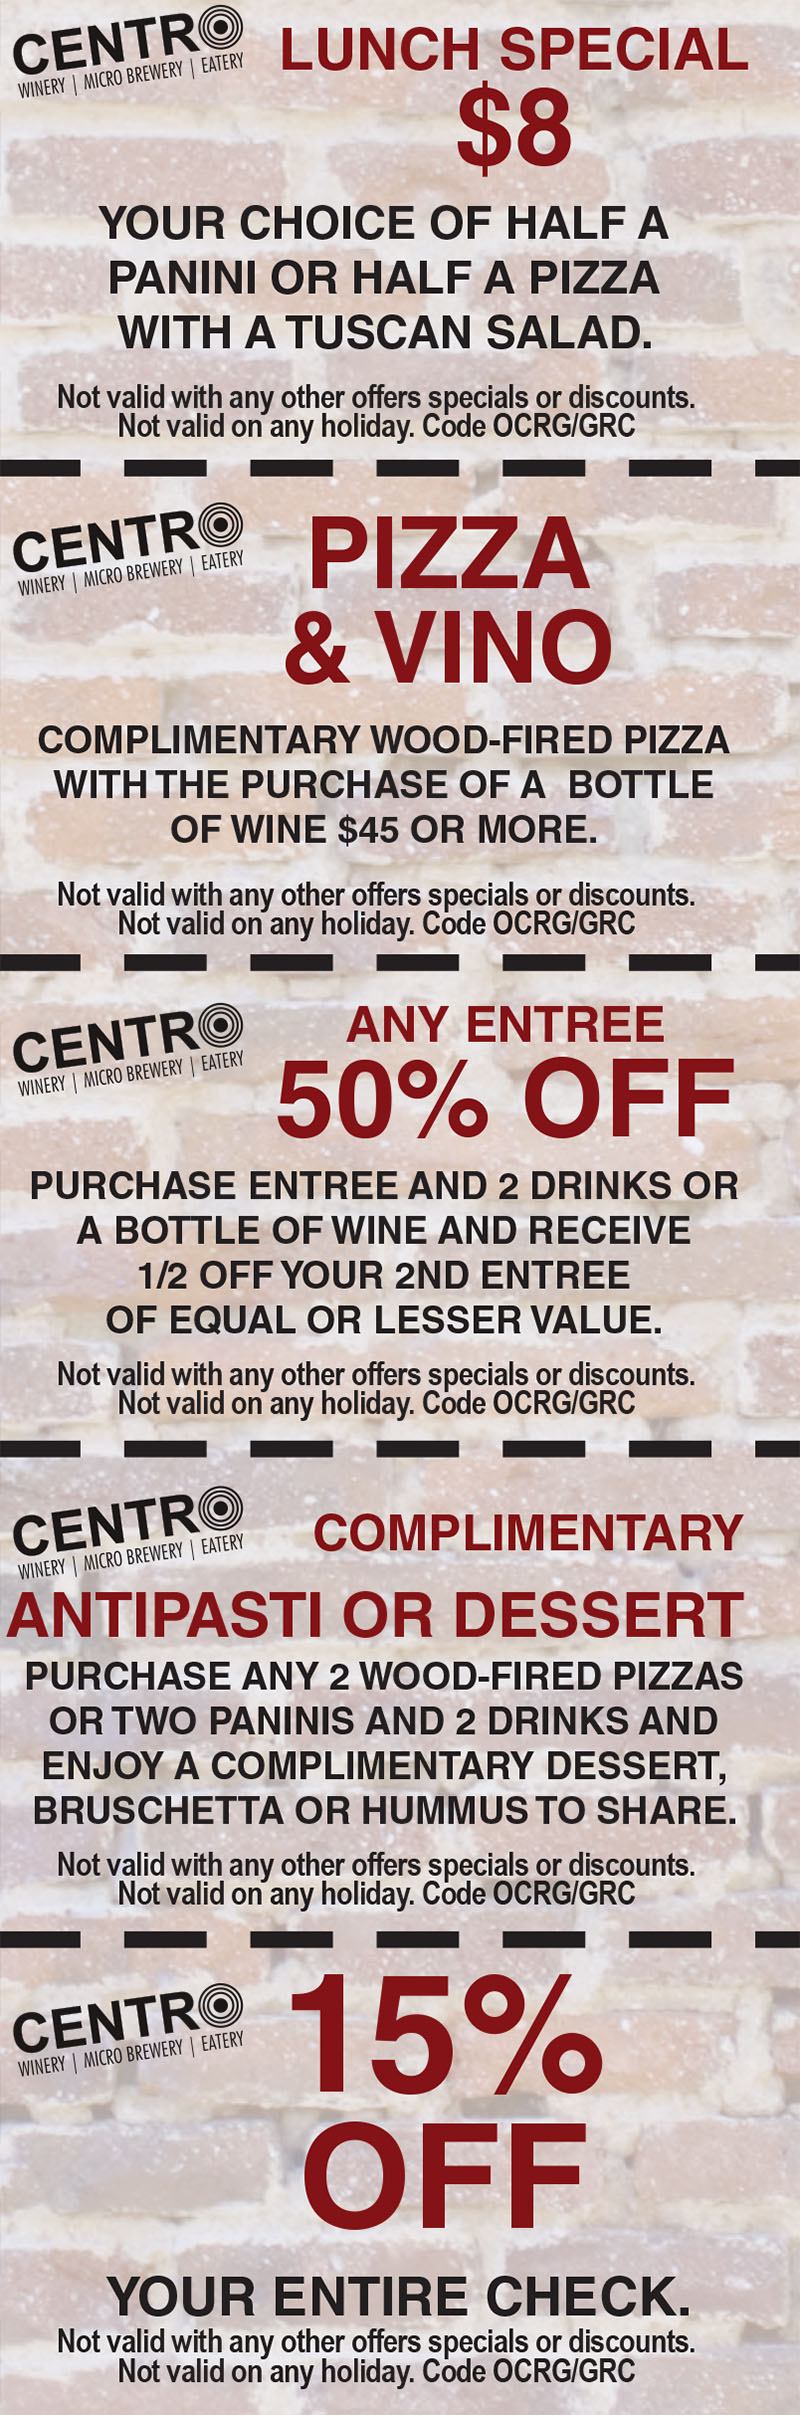 CentroCoupons2